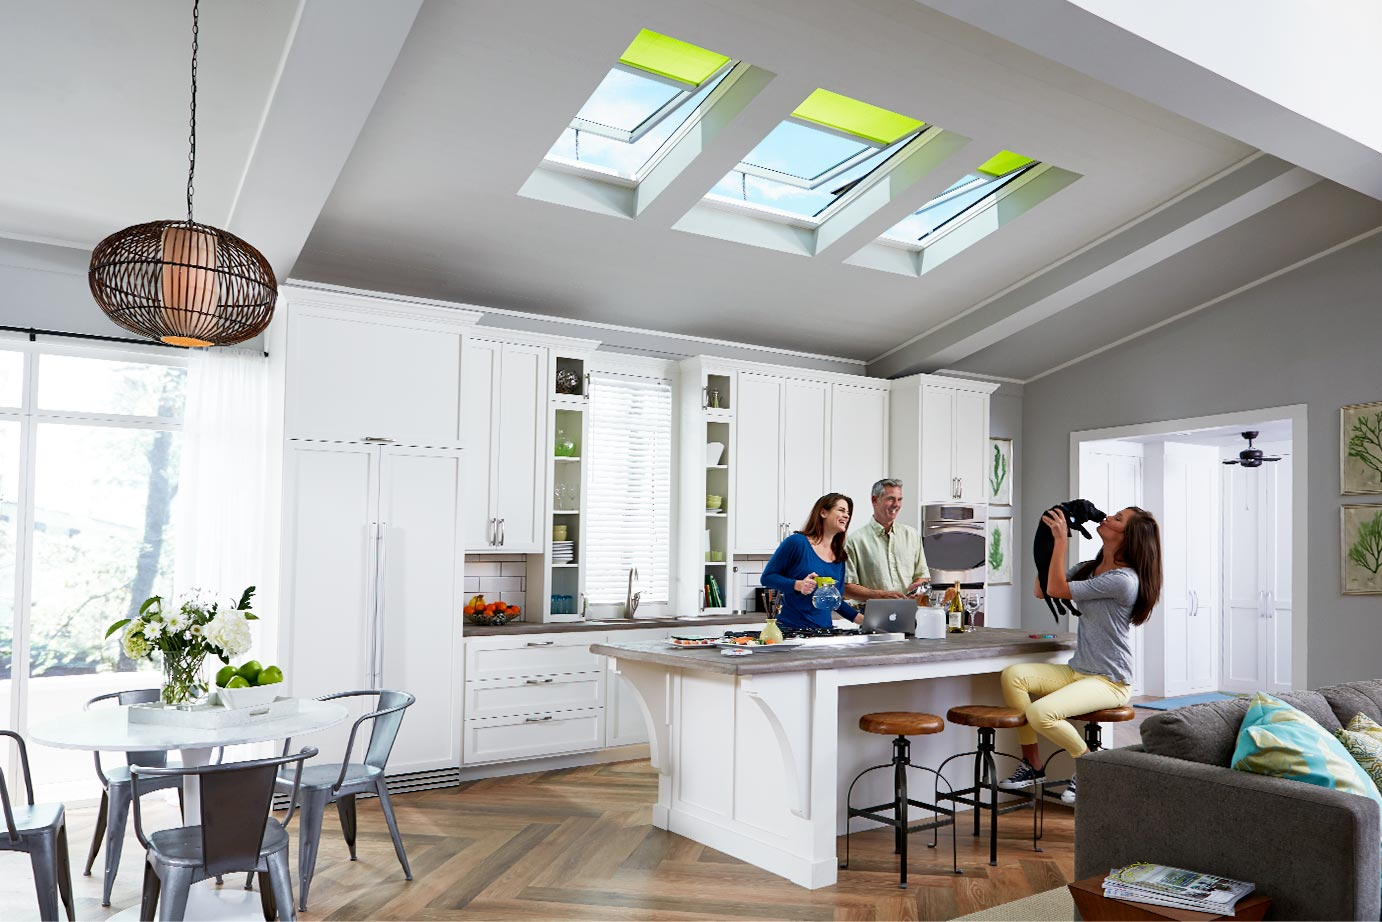 kitchen green blinds?h=922&la=en&w=1382&cc=grid_12&key=145917965341898&sw=960 velux frequently asked questions velux klf 100 wiring diagram at panicattacktreatment.co